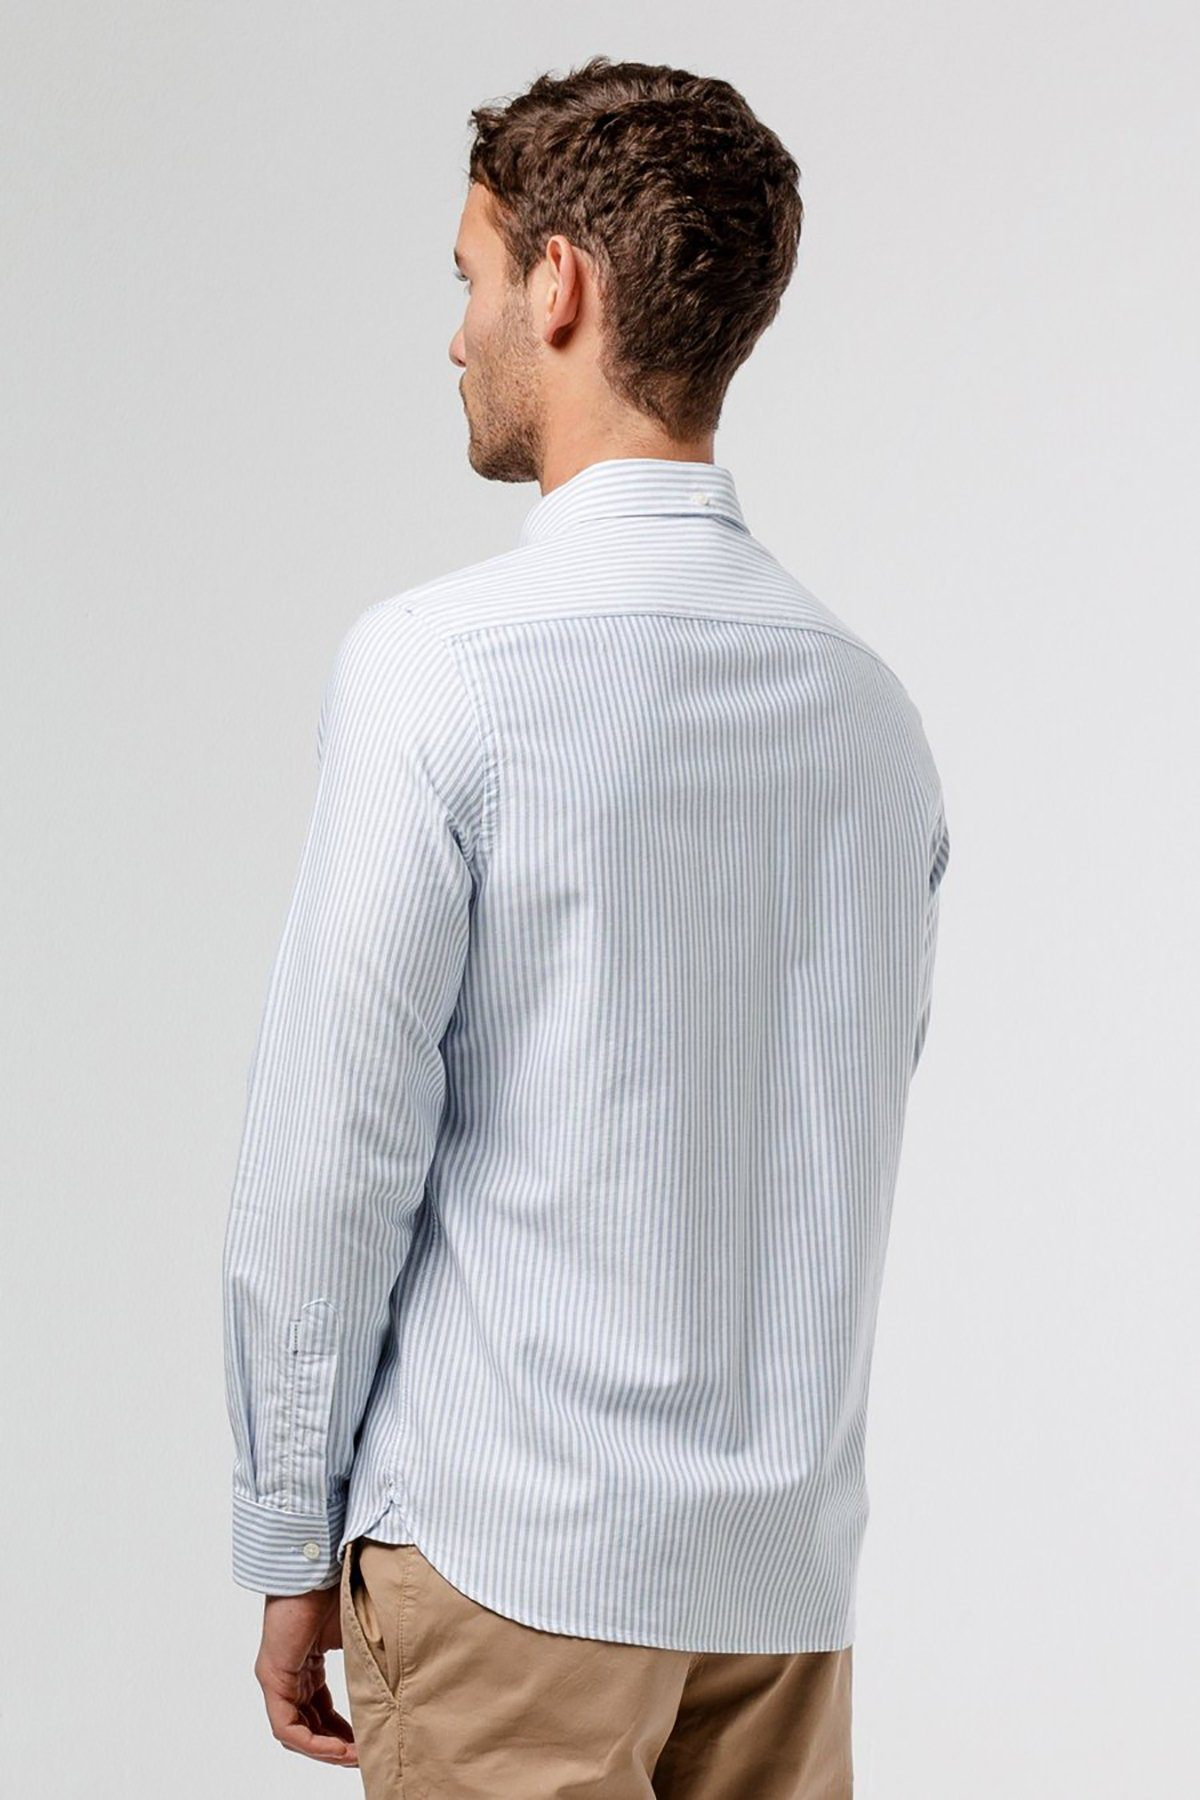 Stripped White and Blue Shirt with Duck Patch - Life in Paradigm Menswear London